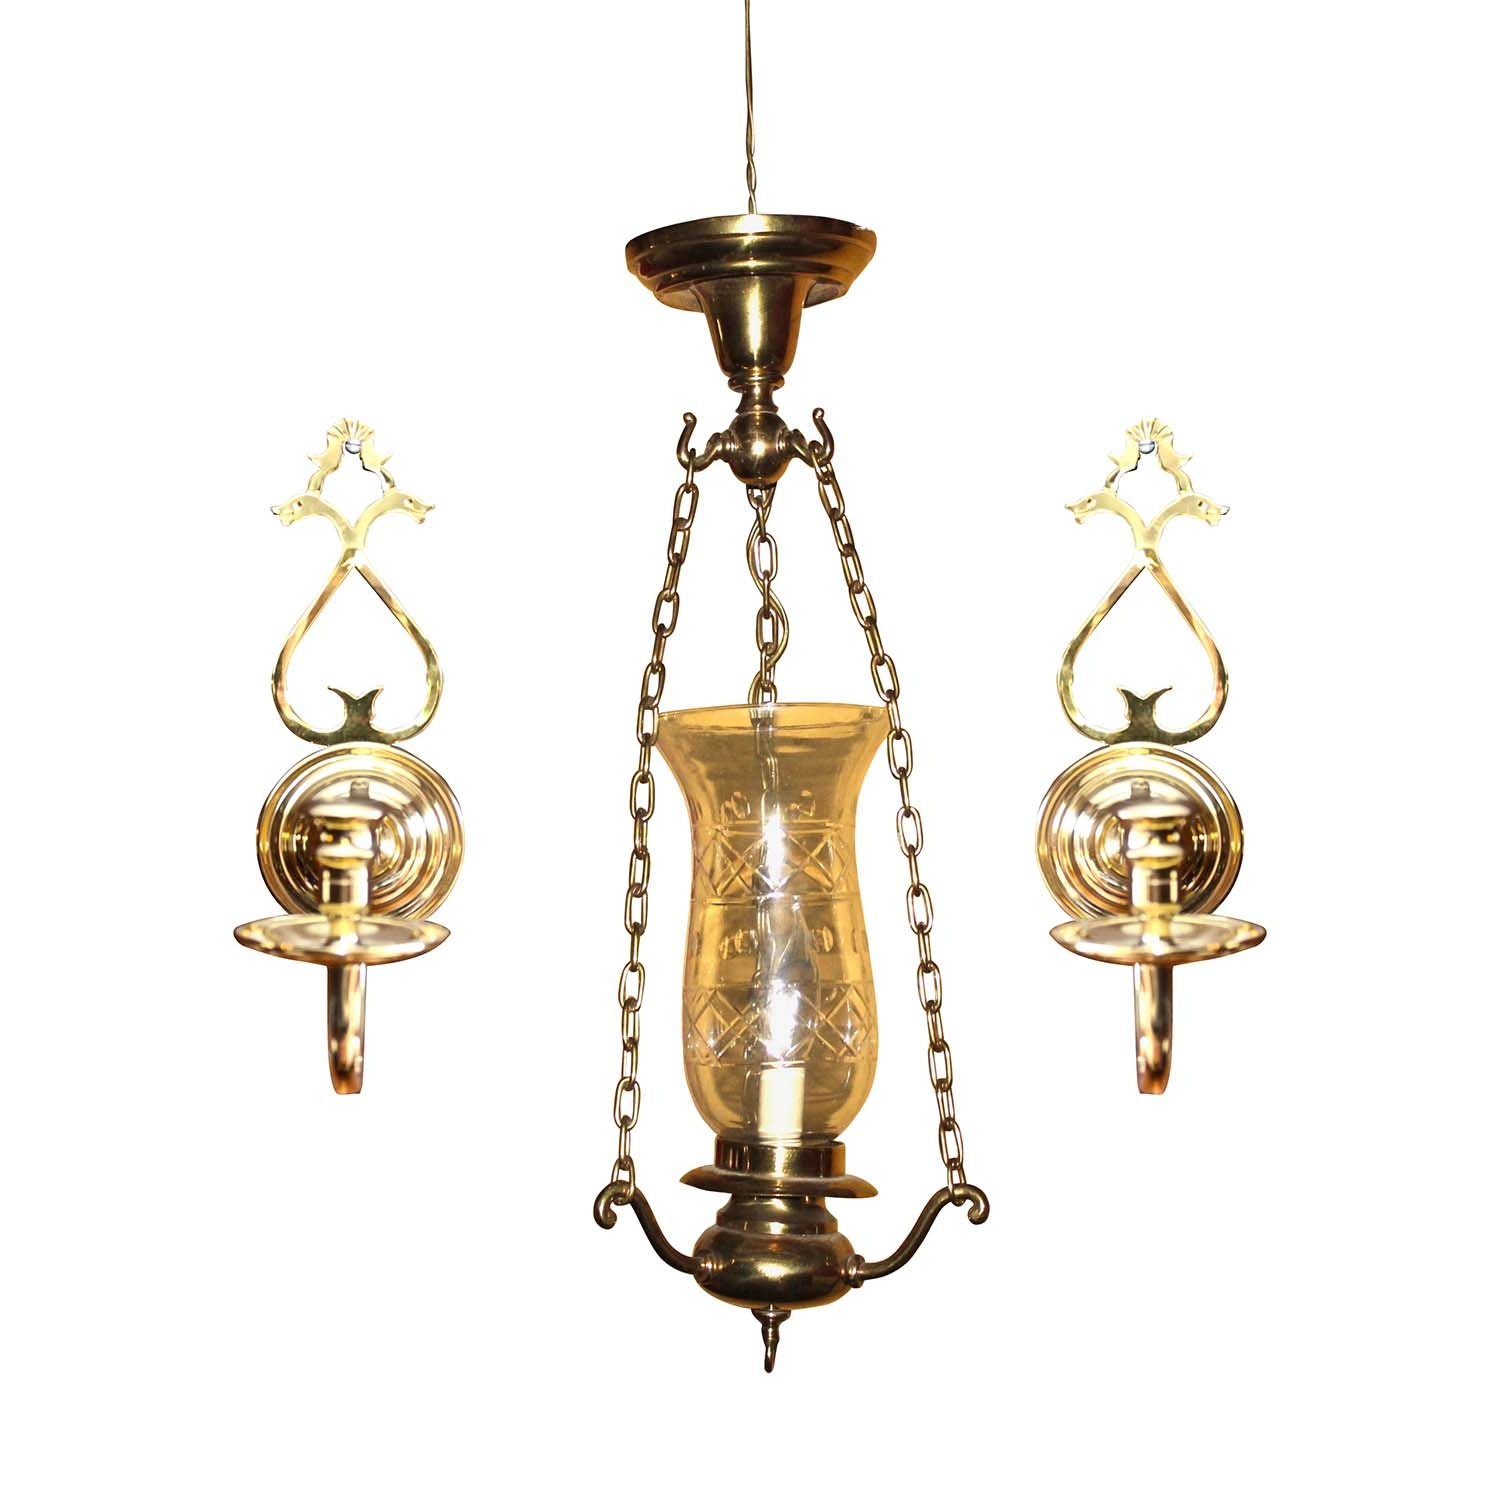 Brass Pendant Light with Cut Glass Shade and Brass Candle Sconces